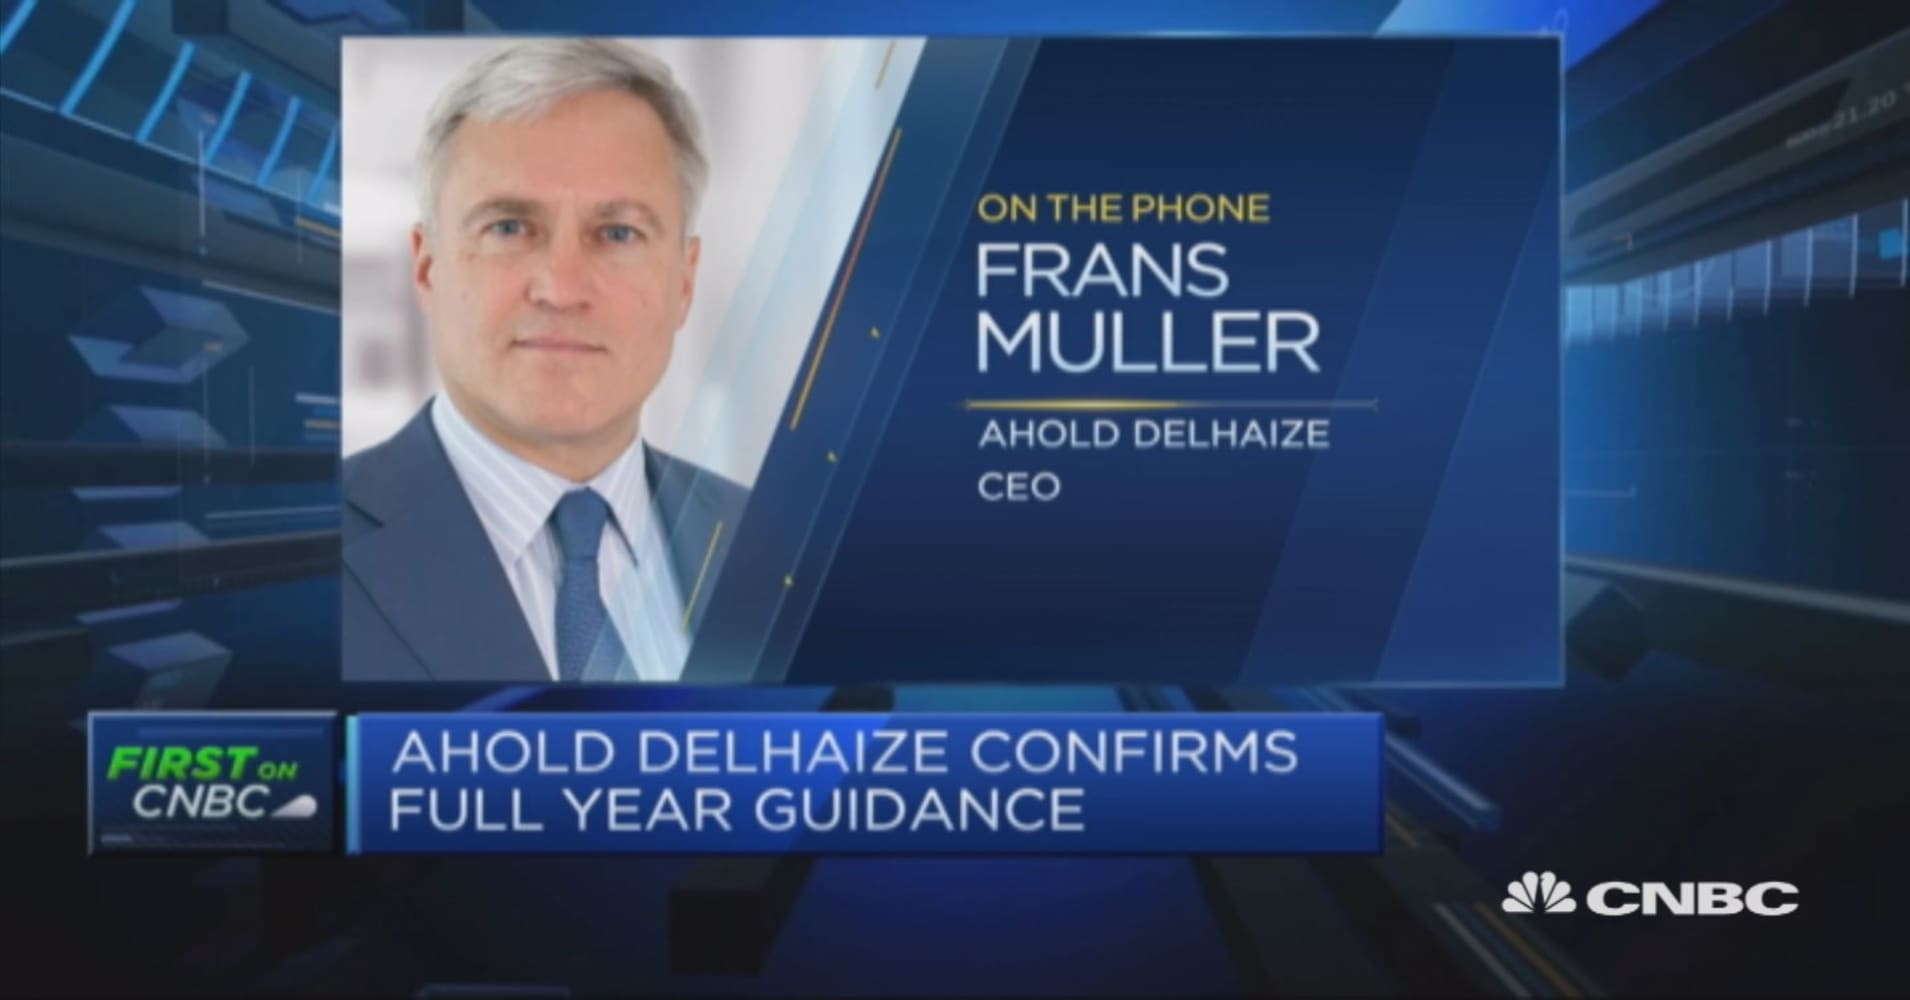 Ahold Delhaize CEO: A number of things working well for us